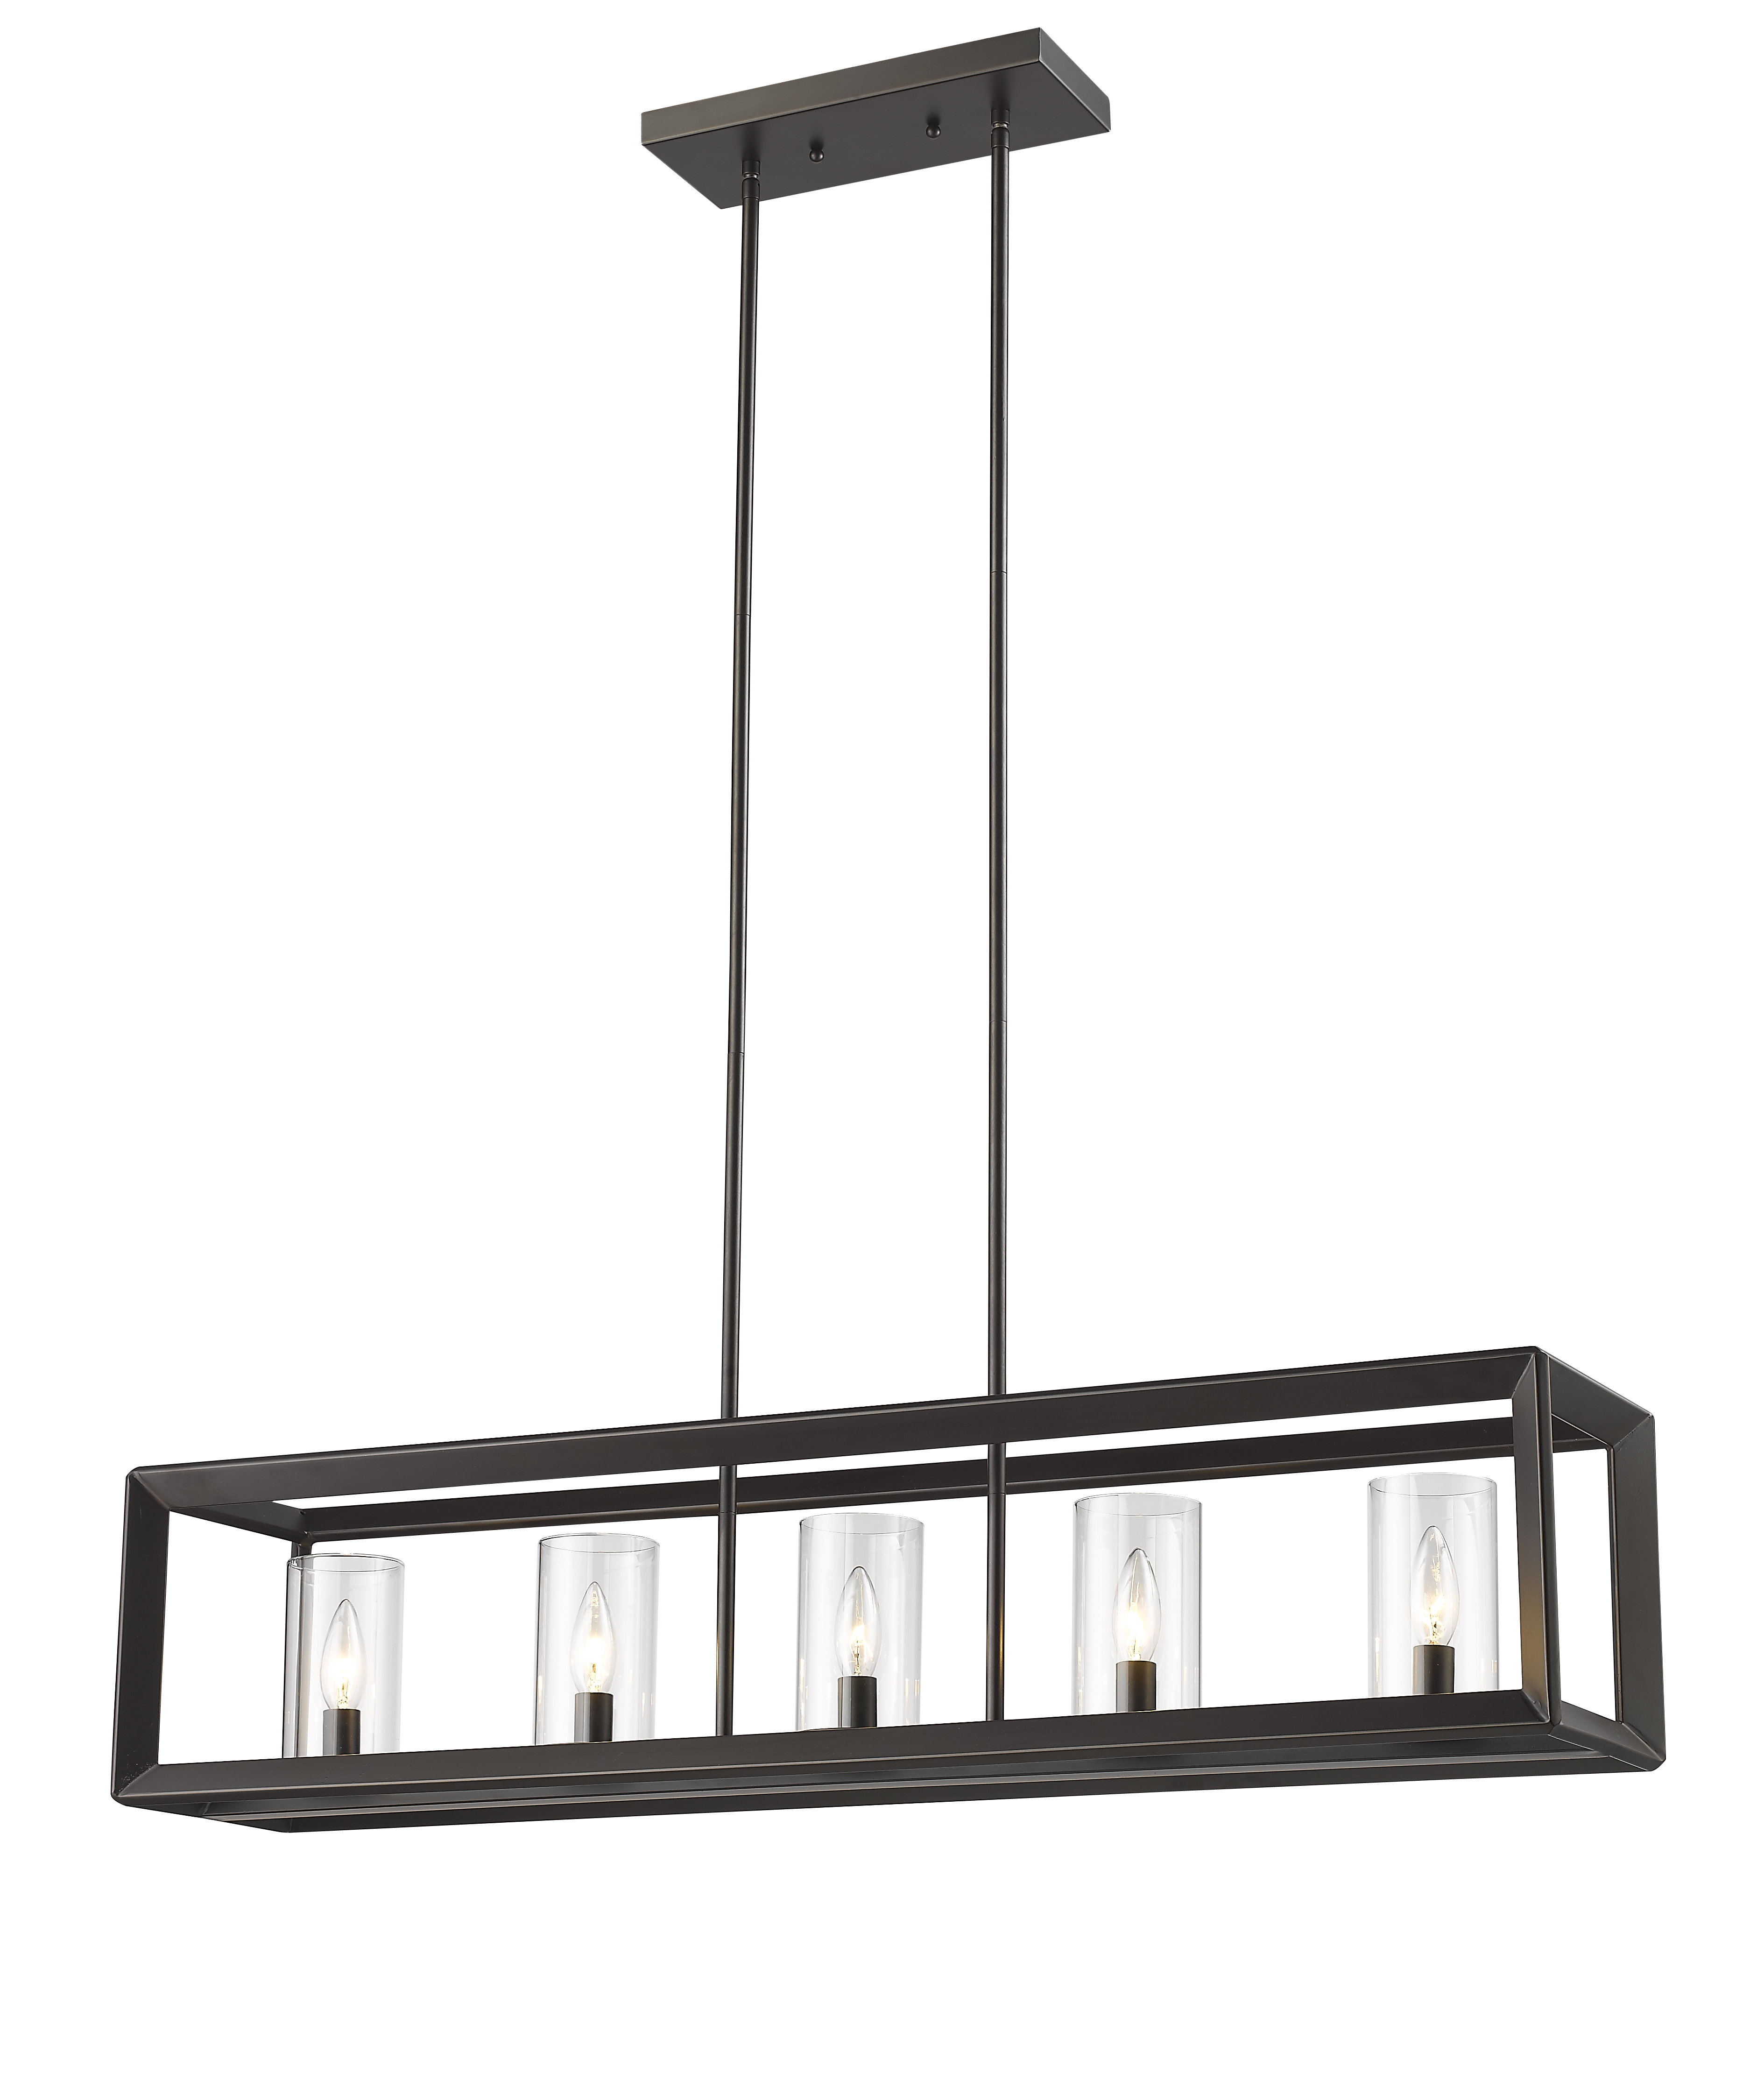 Vandoren Canyon 5-Light Kitchen Island Linear Pendant inside Odie 8-Light Kitchen Island Square / Rectangle Pendants (Image 30 of 30)